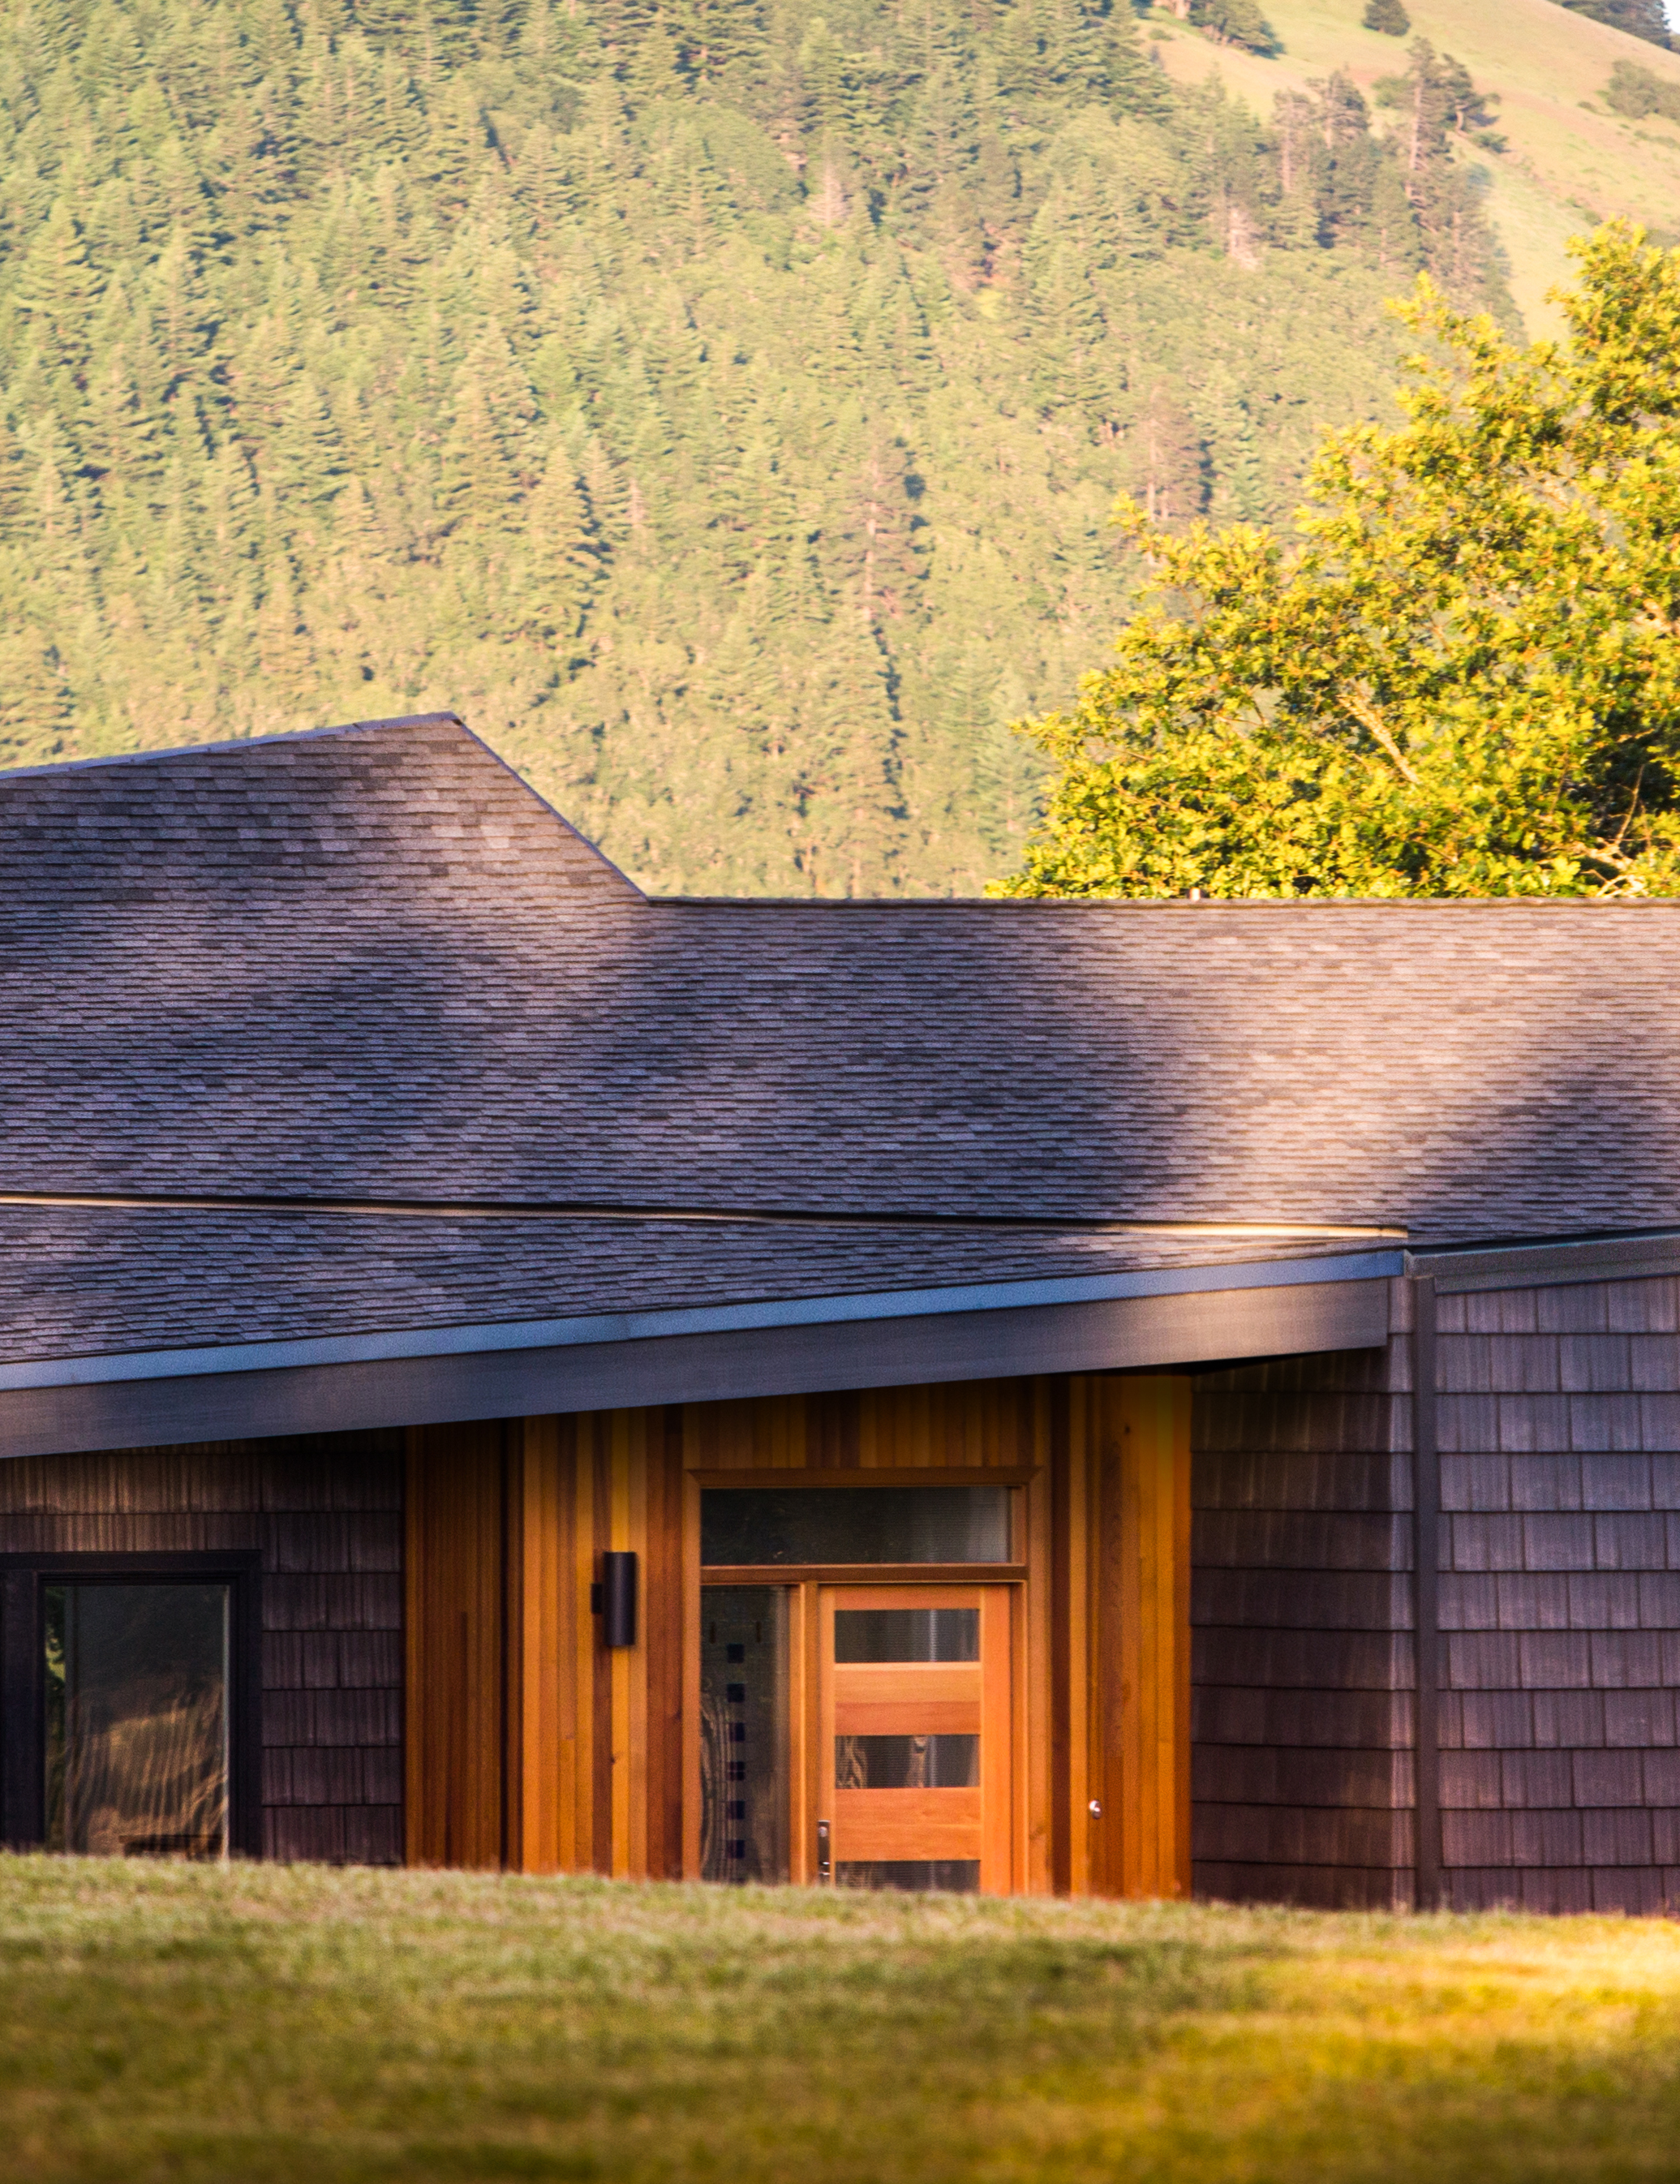 Columbia Gorge House / WASHINGTON